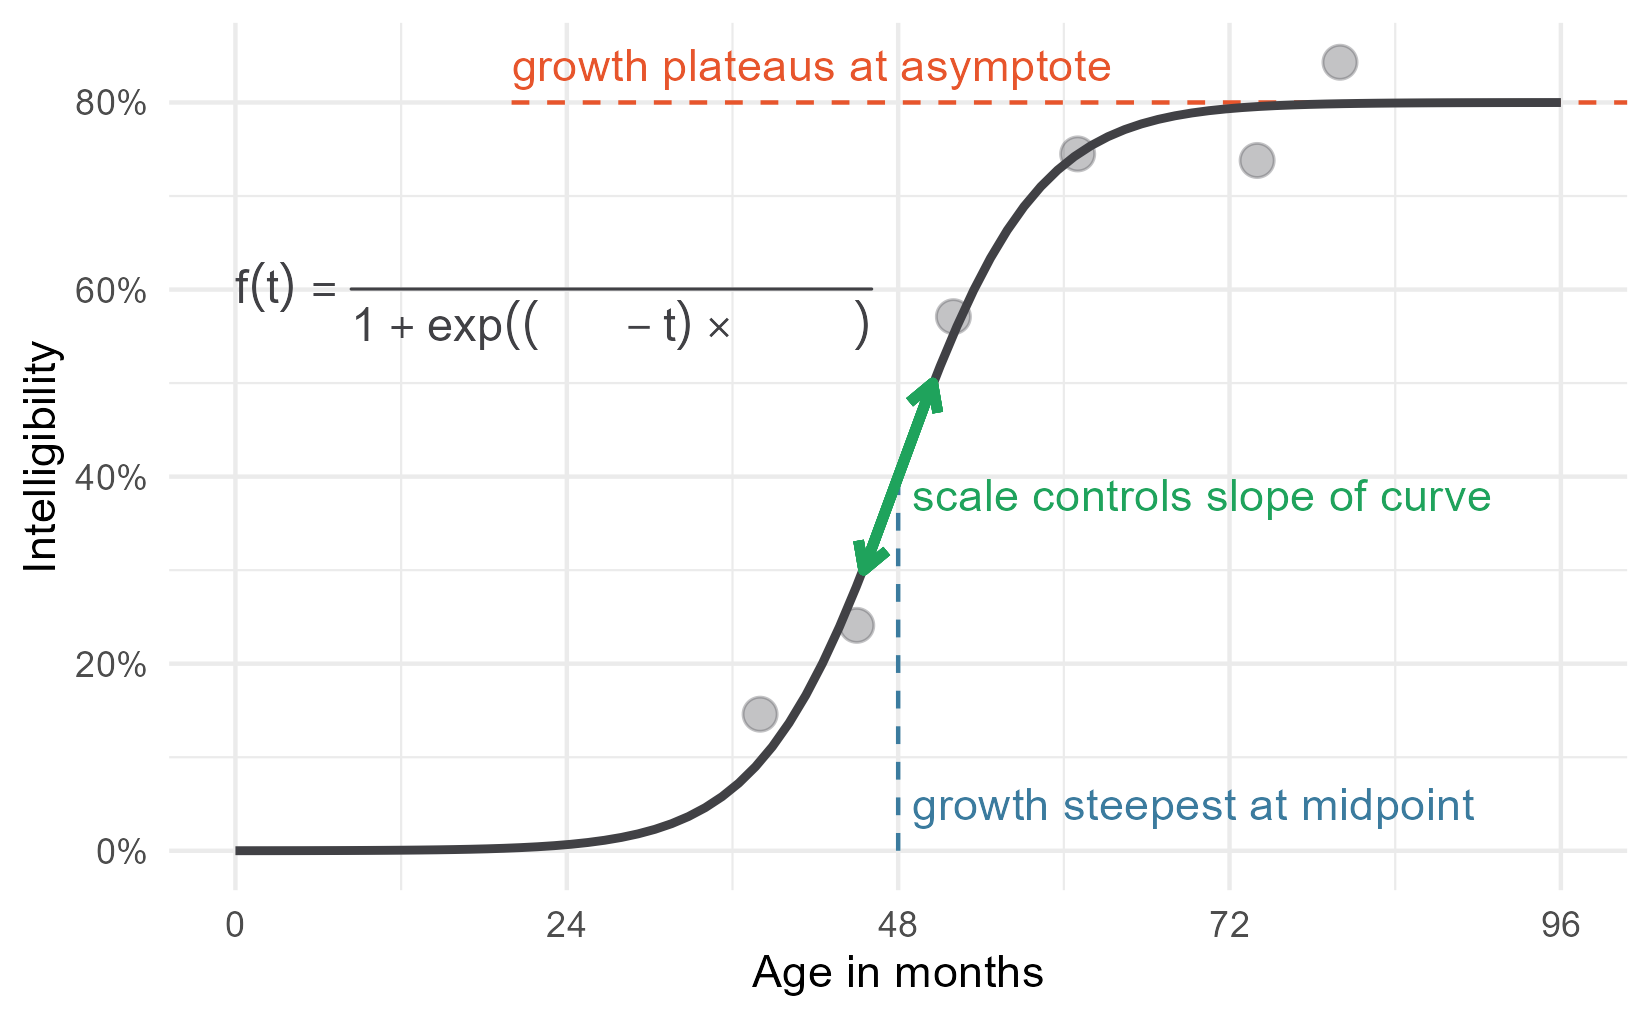 Labelled plot from earlier with an equation added to it, except there are blanks for 'asymptote', 'mid', and 'scale'.